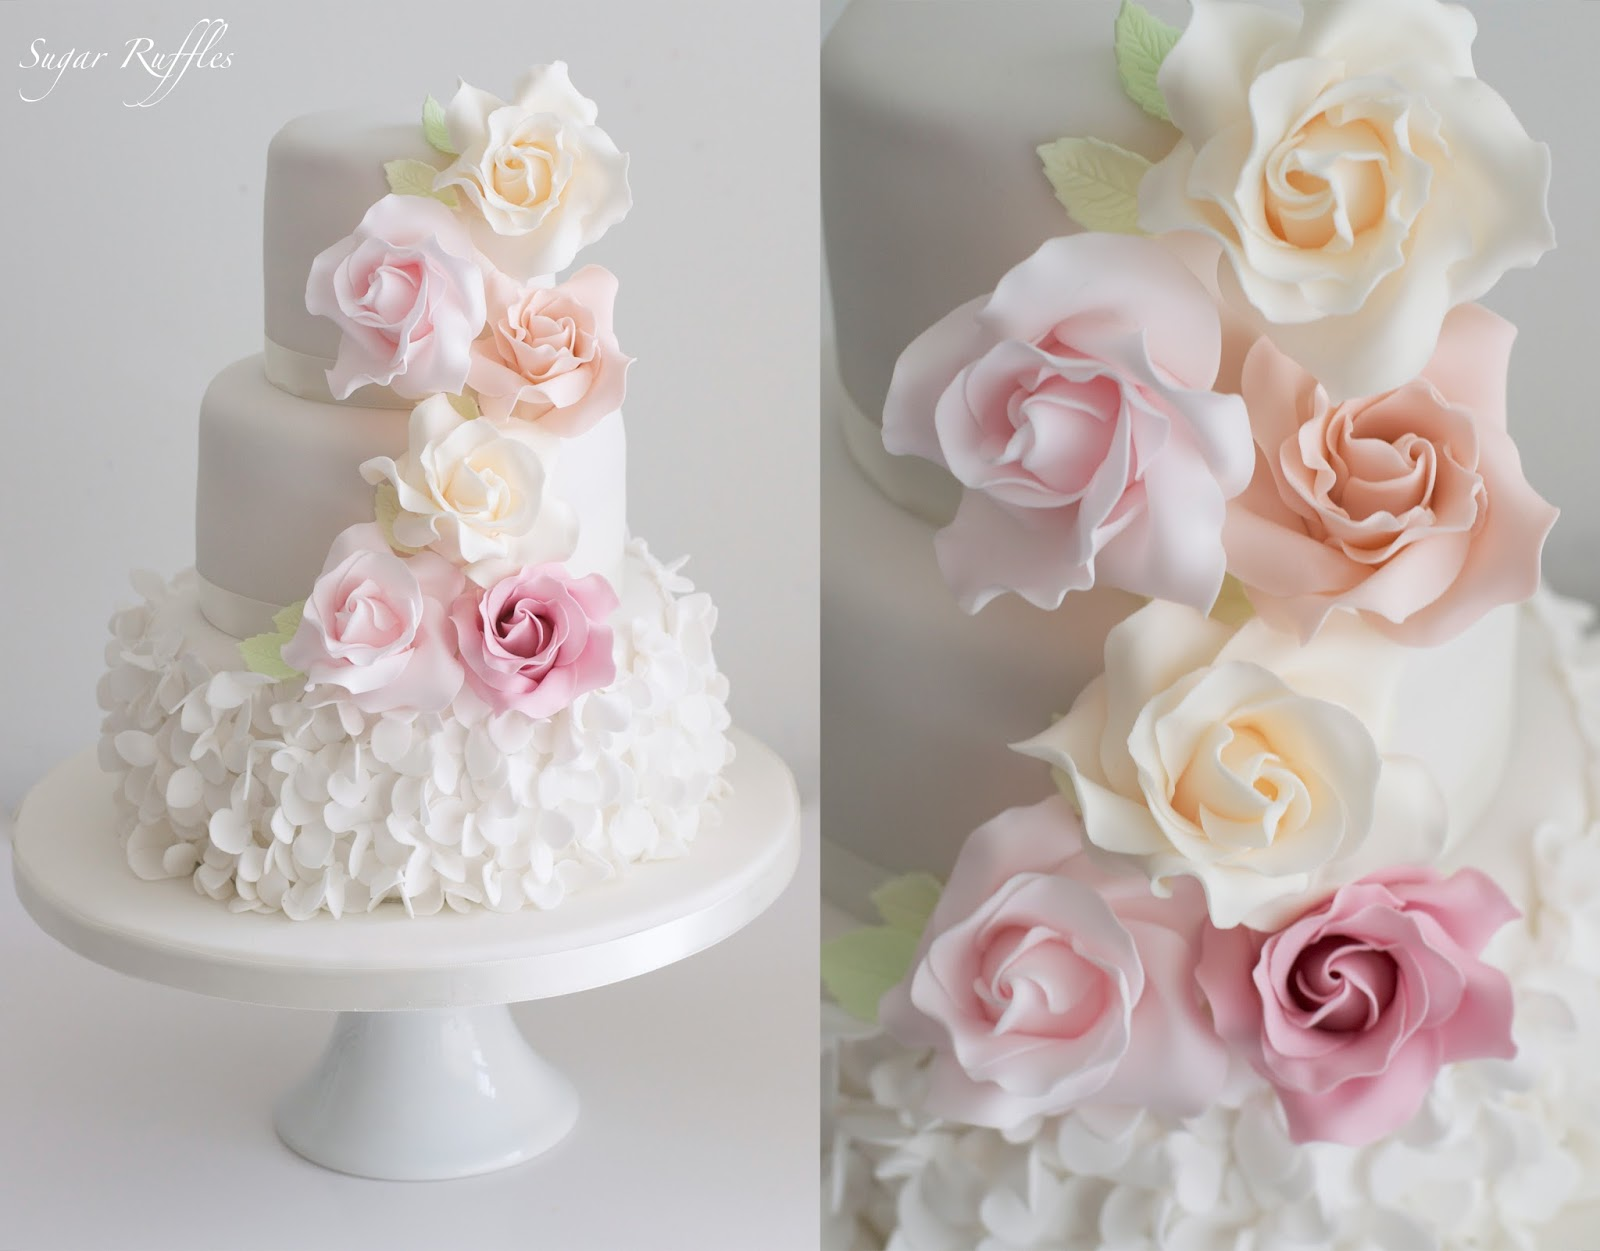 2 Tier Wedding Cakes With Roses Tbrbfo